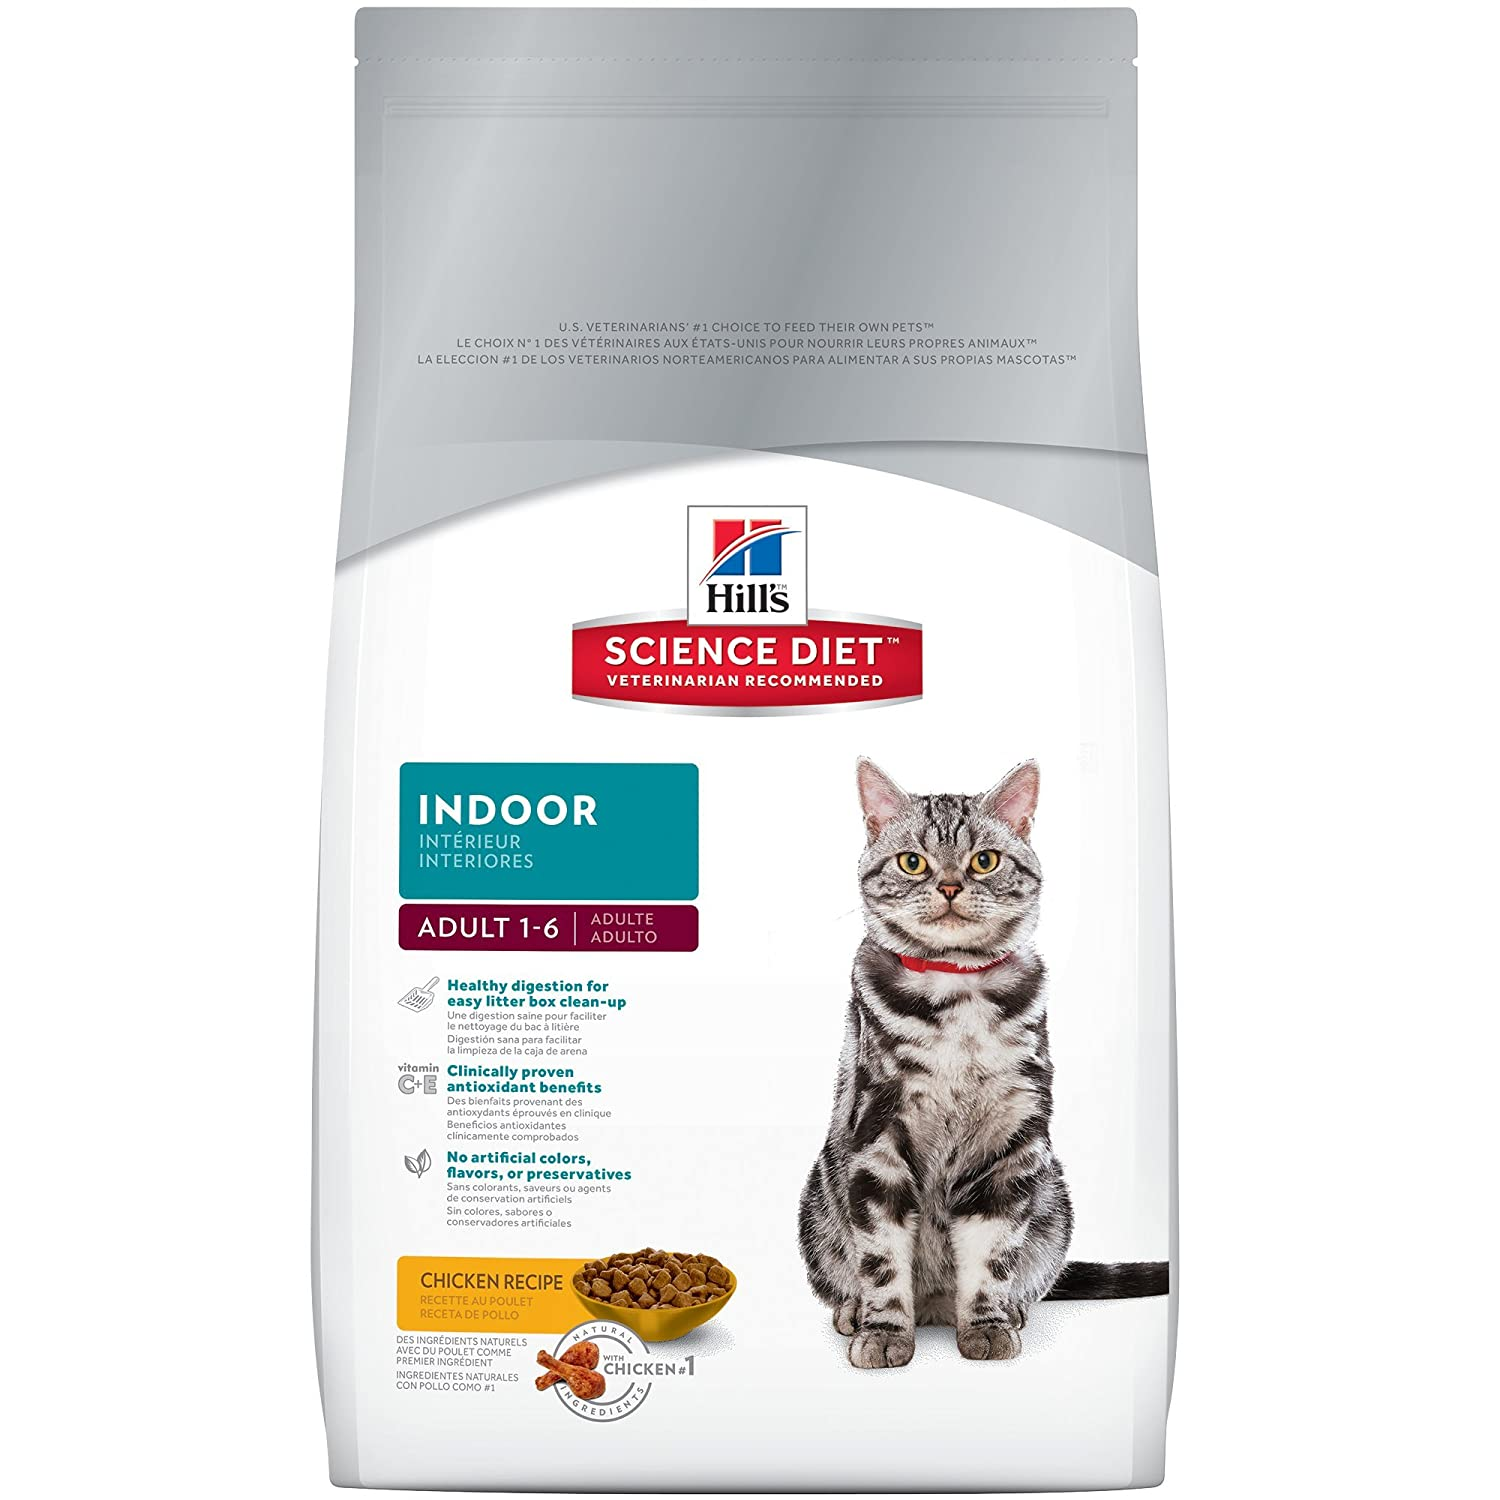 Best Dry Cat Food For Indoor Kittens